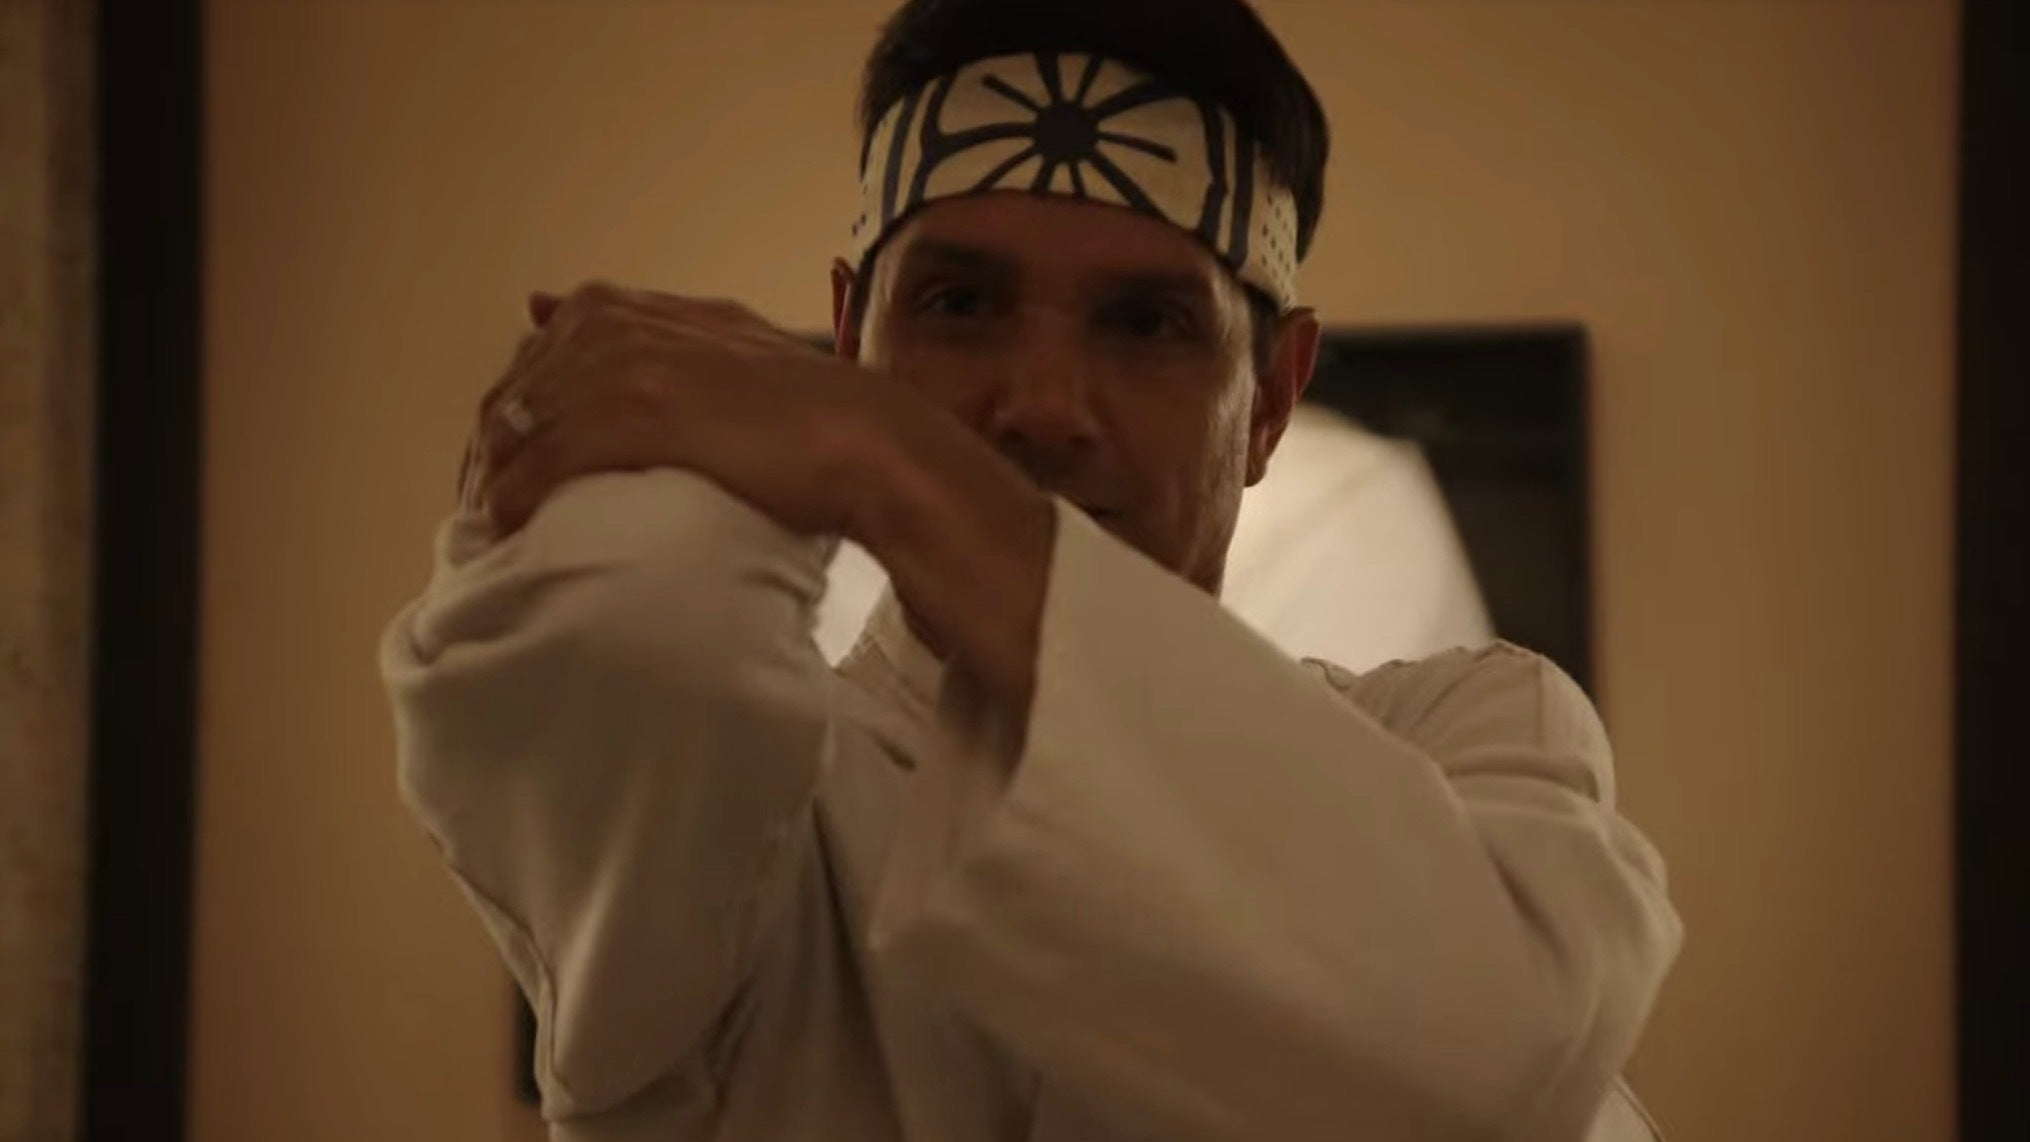 The Karate Kid Sequel Series Cobra Kai Debuts A Giant, Face-Kicking New Trailer